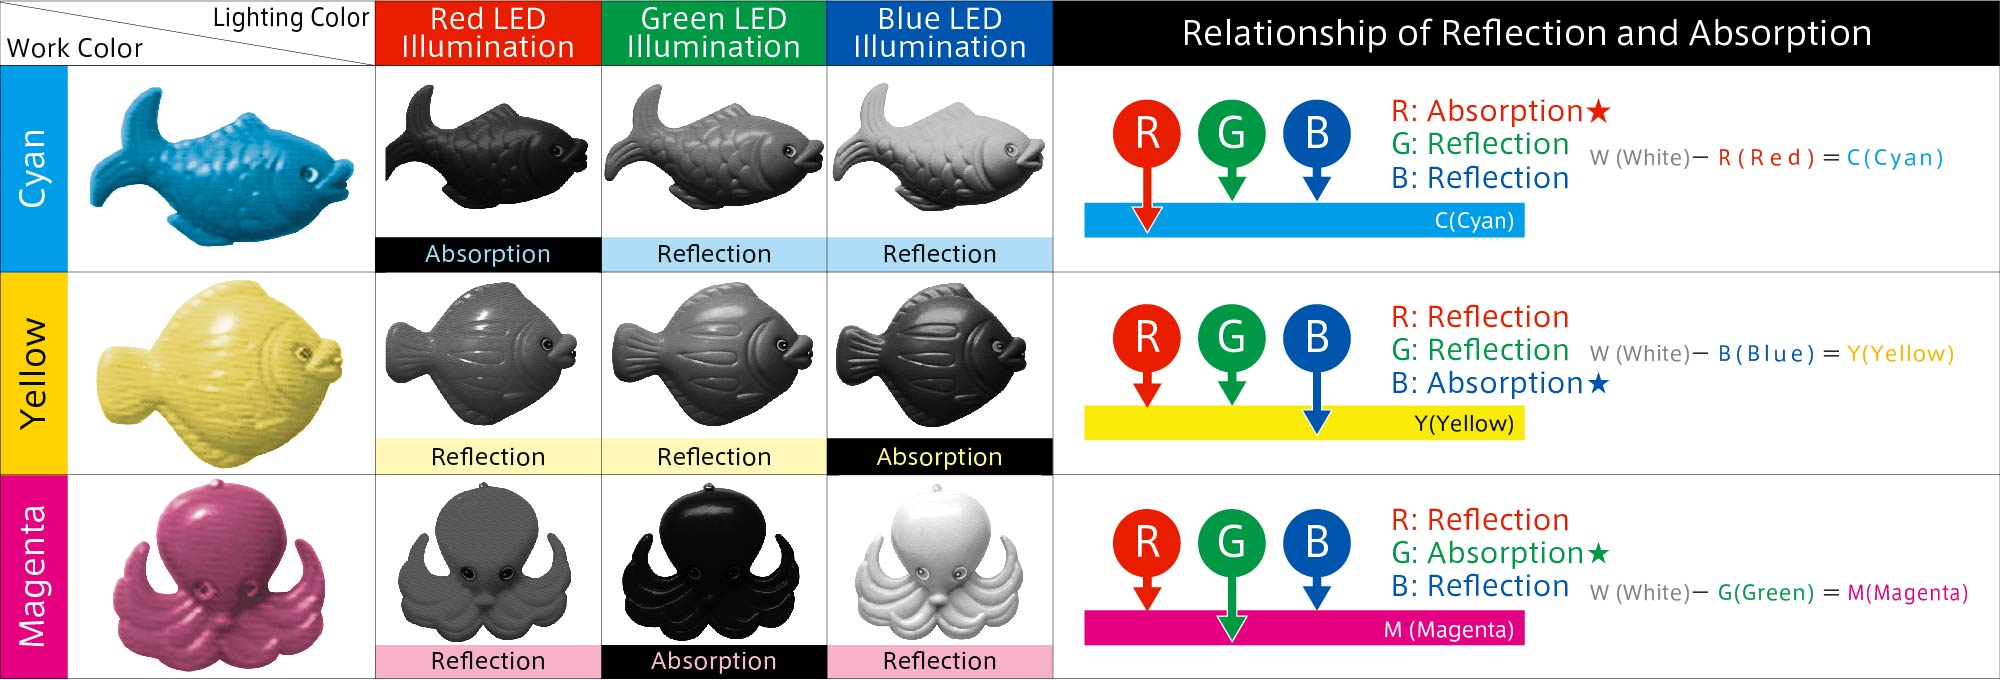 Reflection and absorption of colors